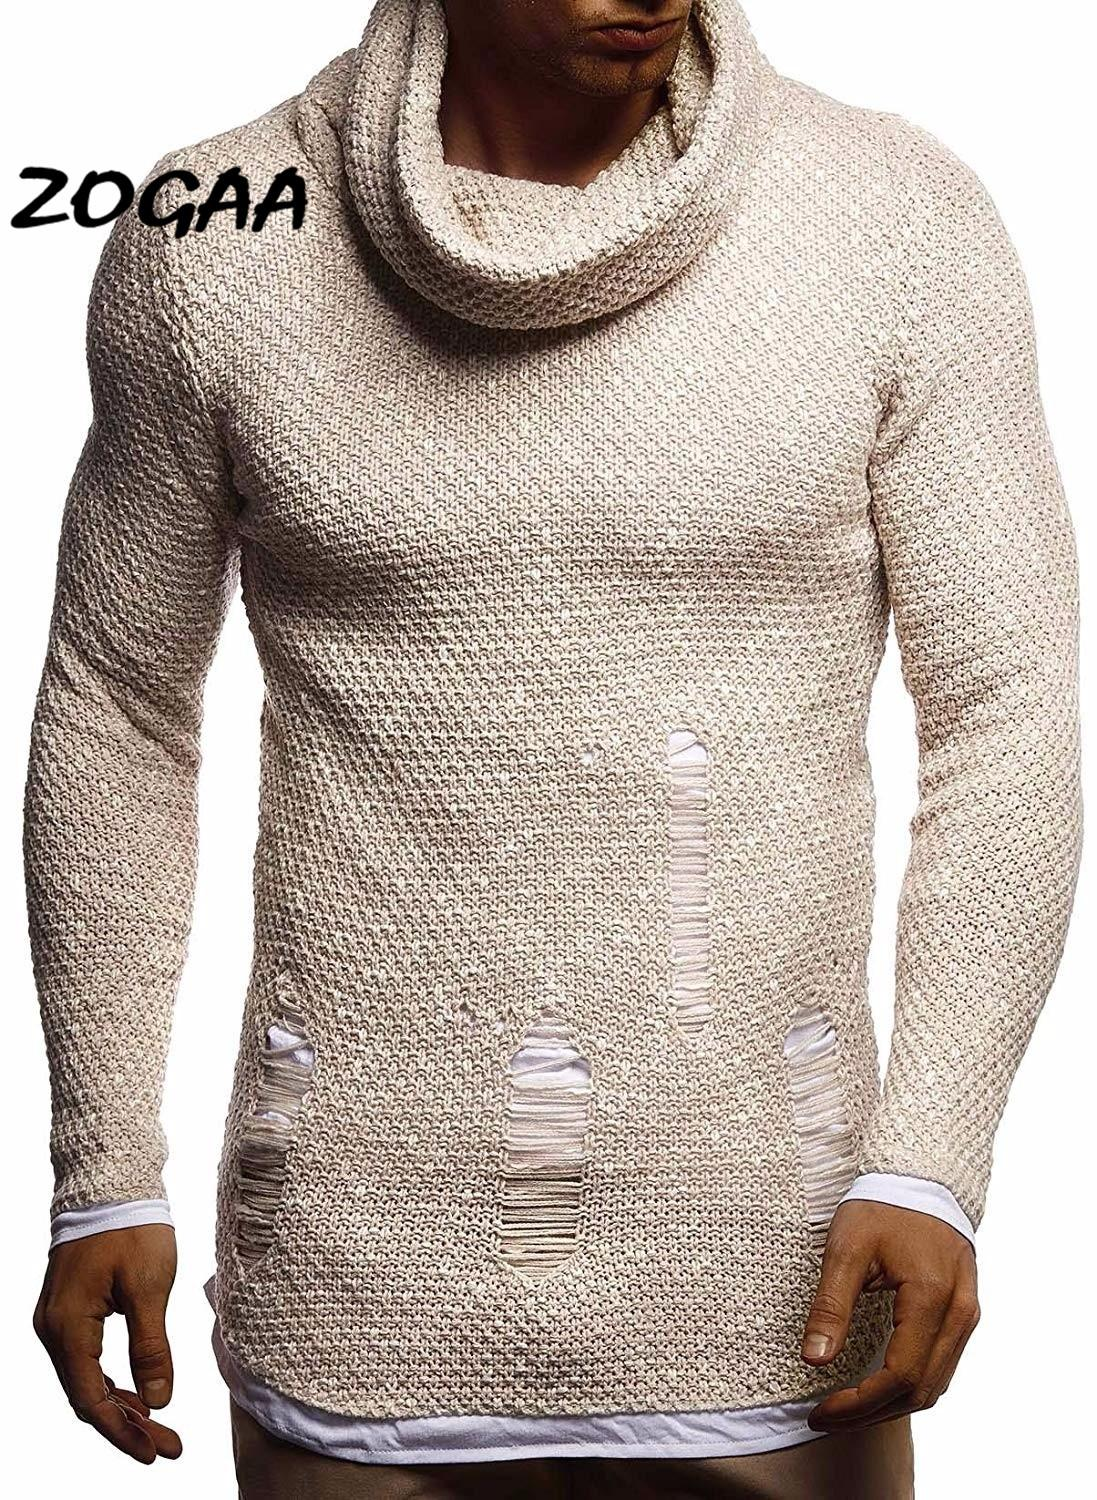 ZOGAA Casual Men's Sweater Turtleneck Slim Sweater Autumn Men's Sweater Pullover Pullover Men